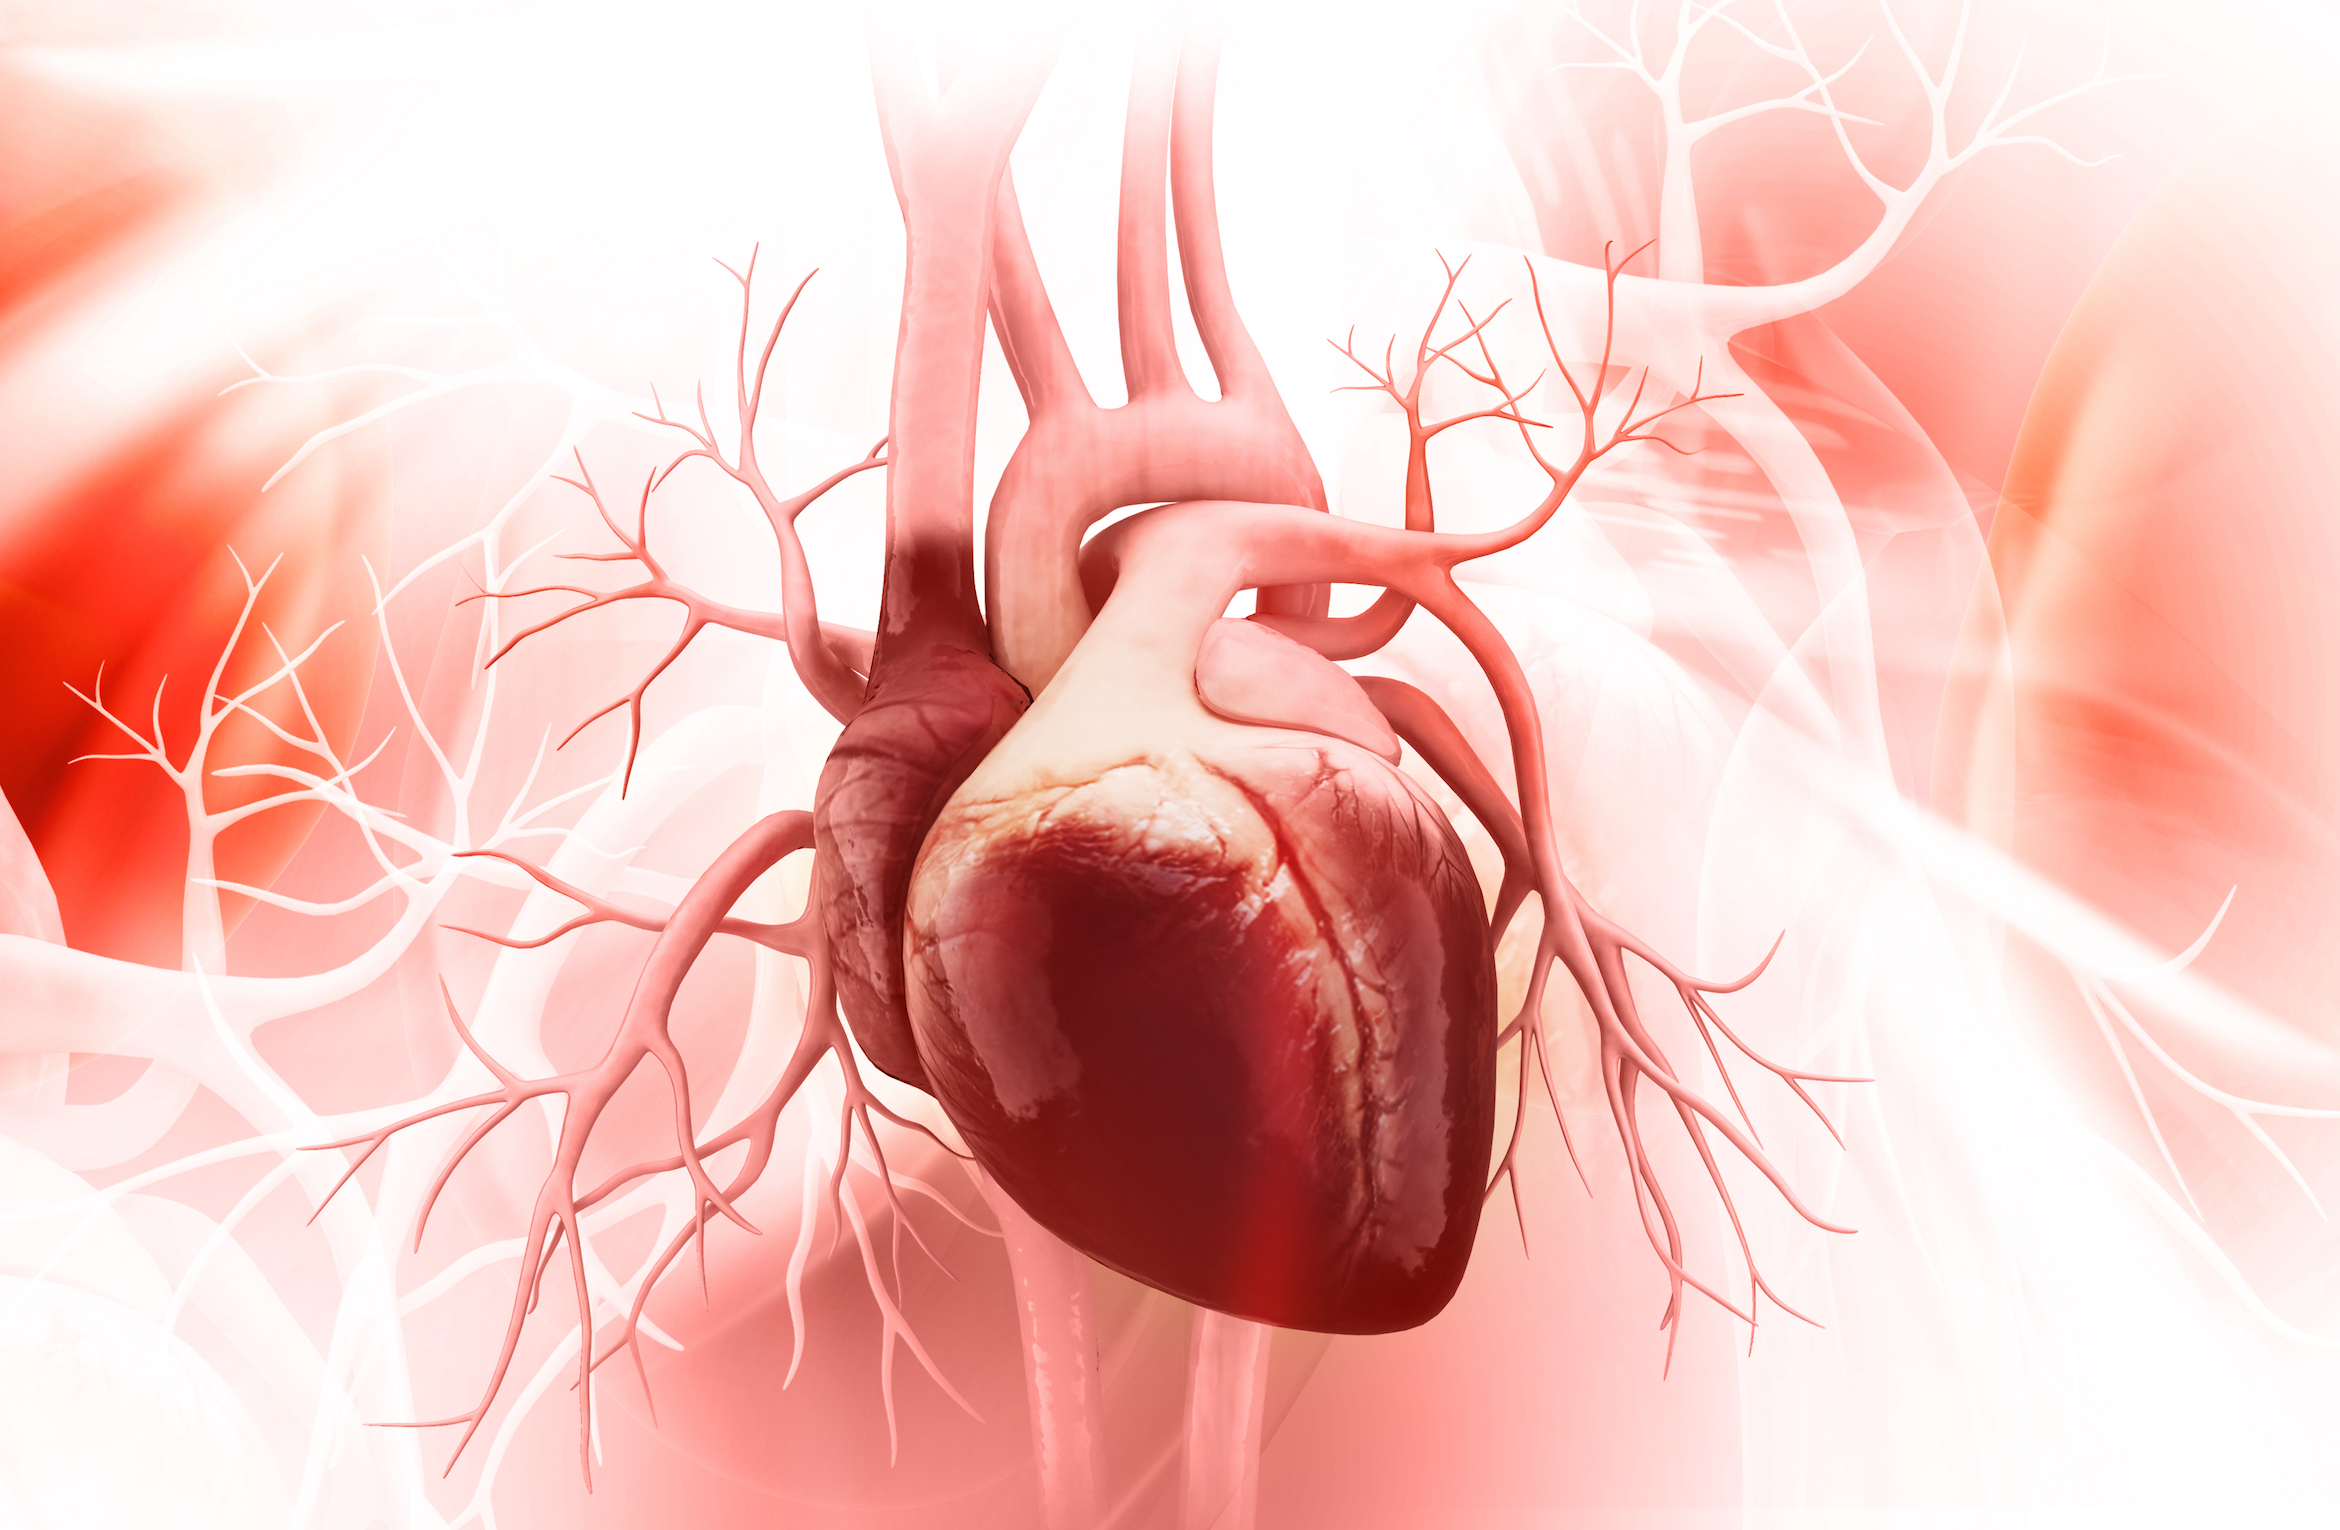 Heart Regeneration Photo